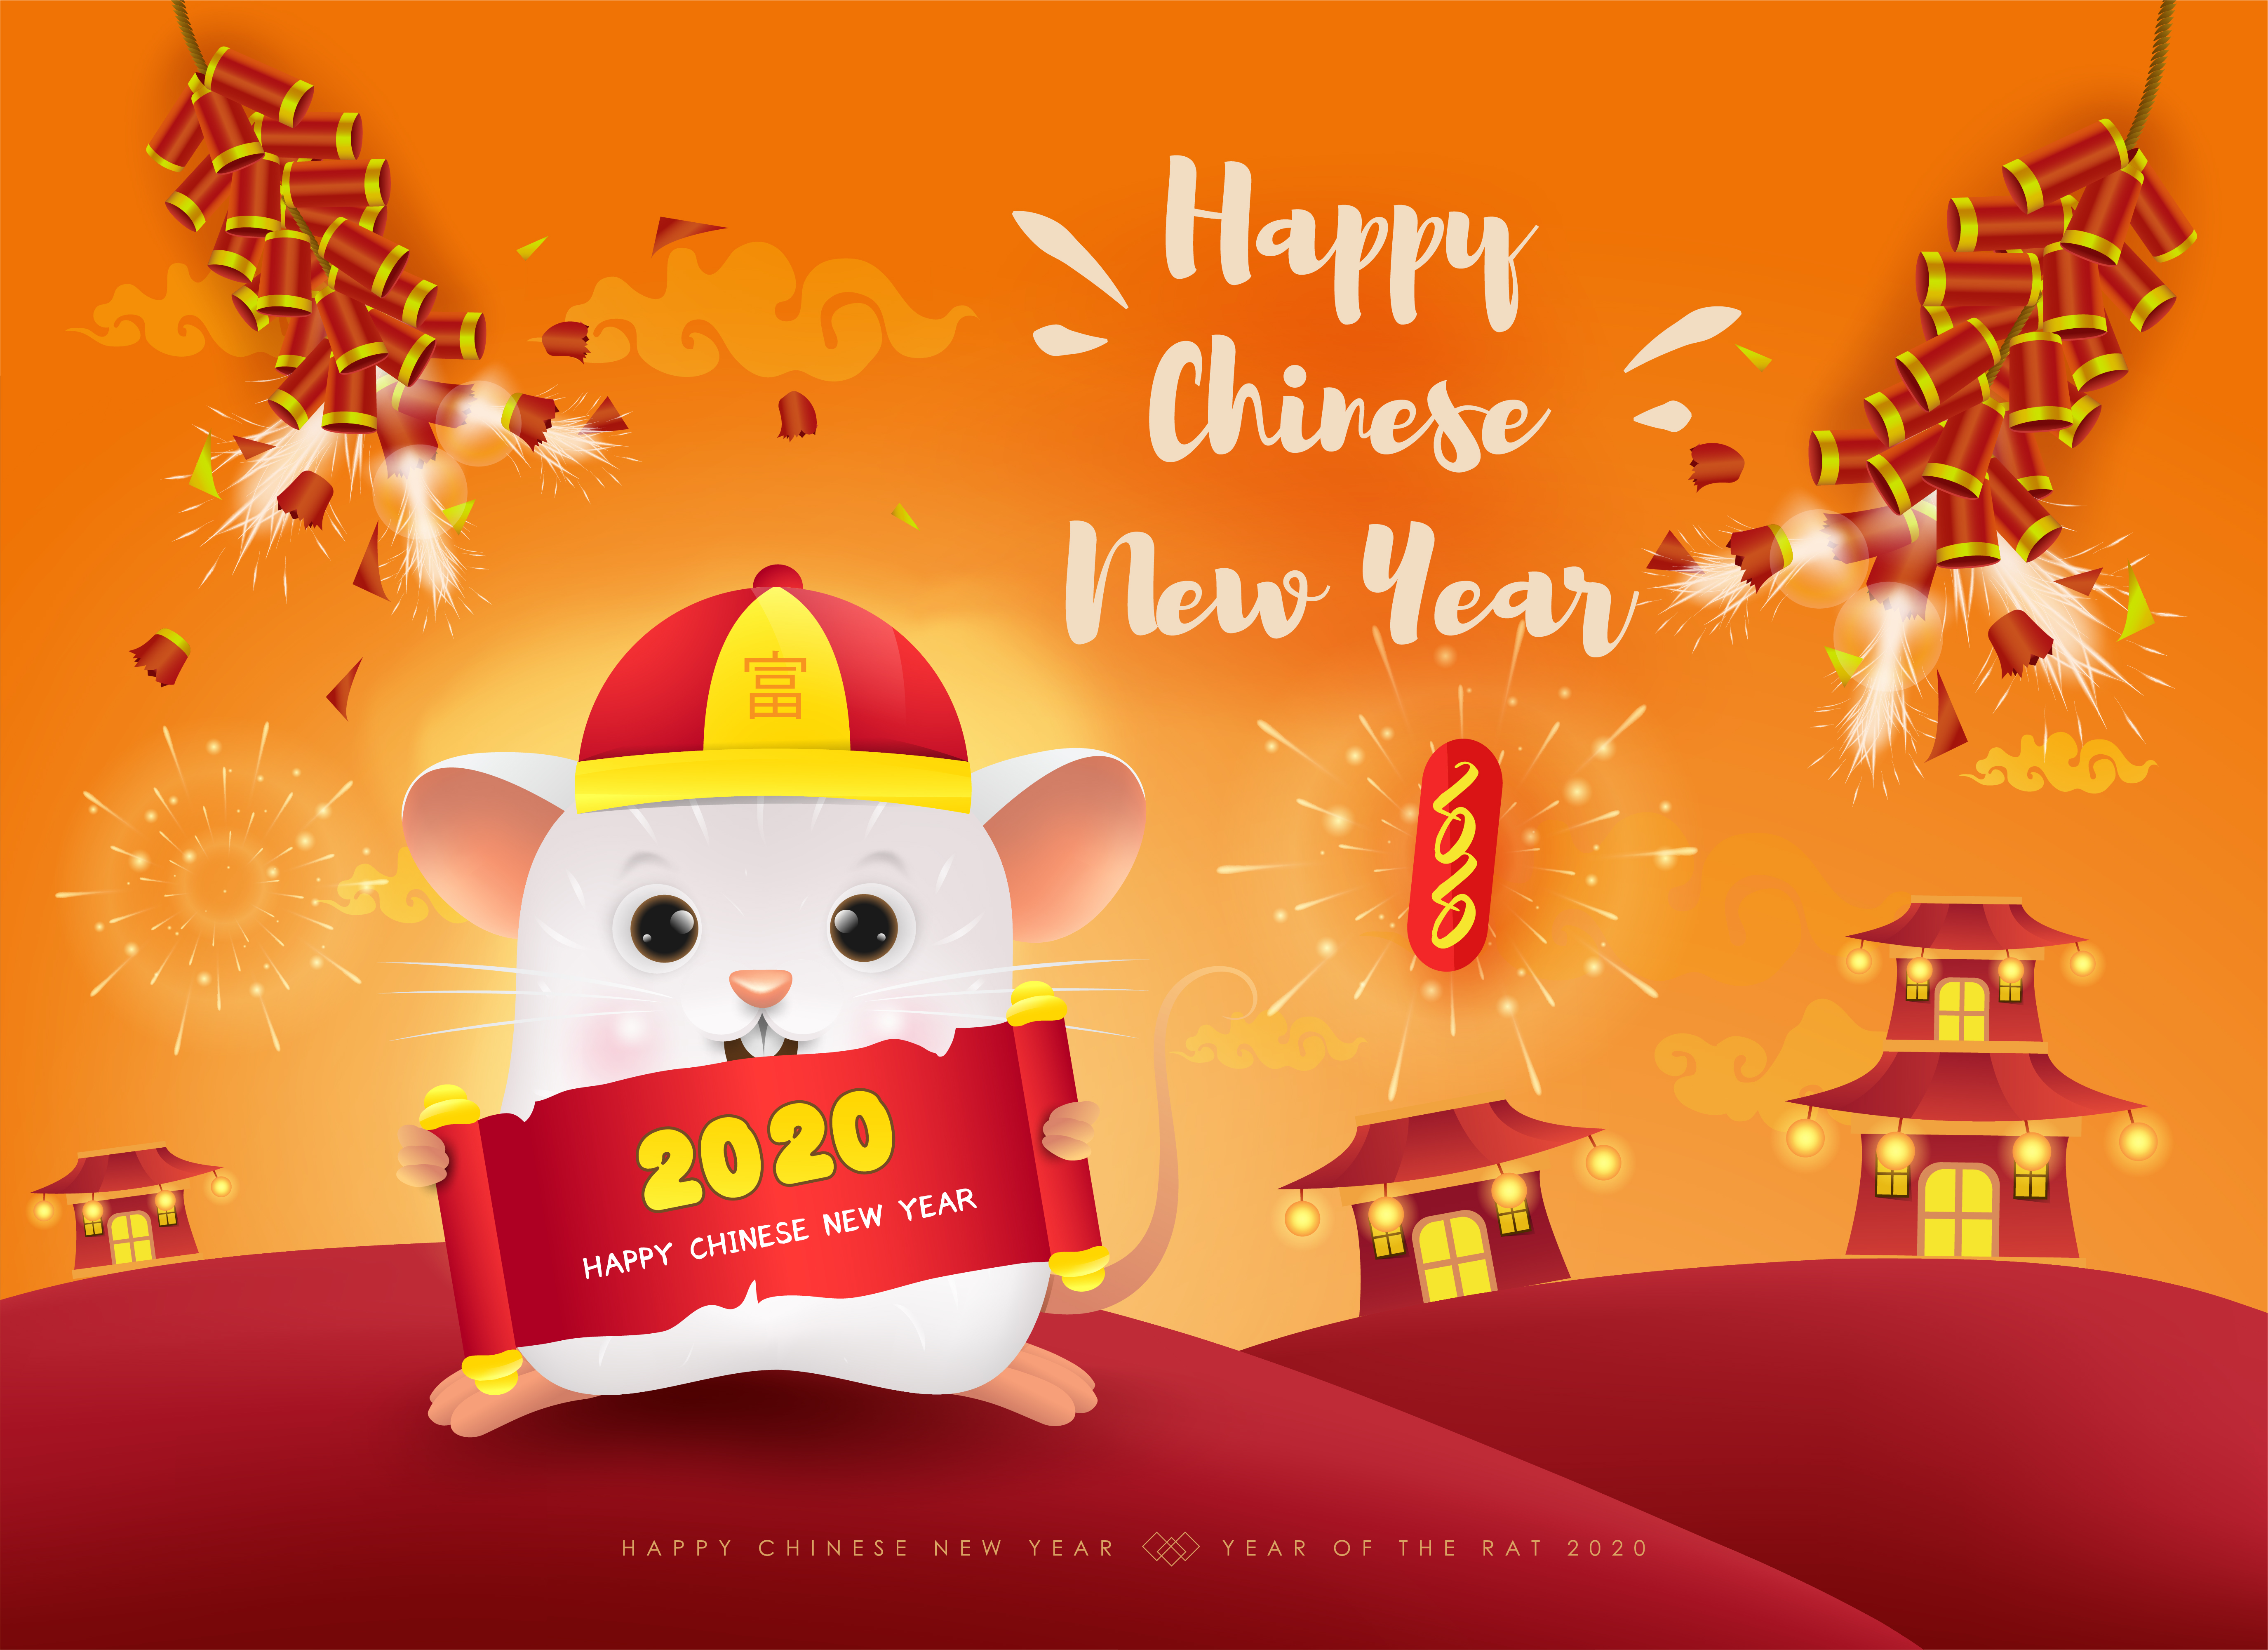 This is a graphic of Punchy Chinese New Year 2020 Images Free